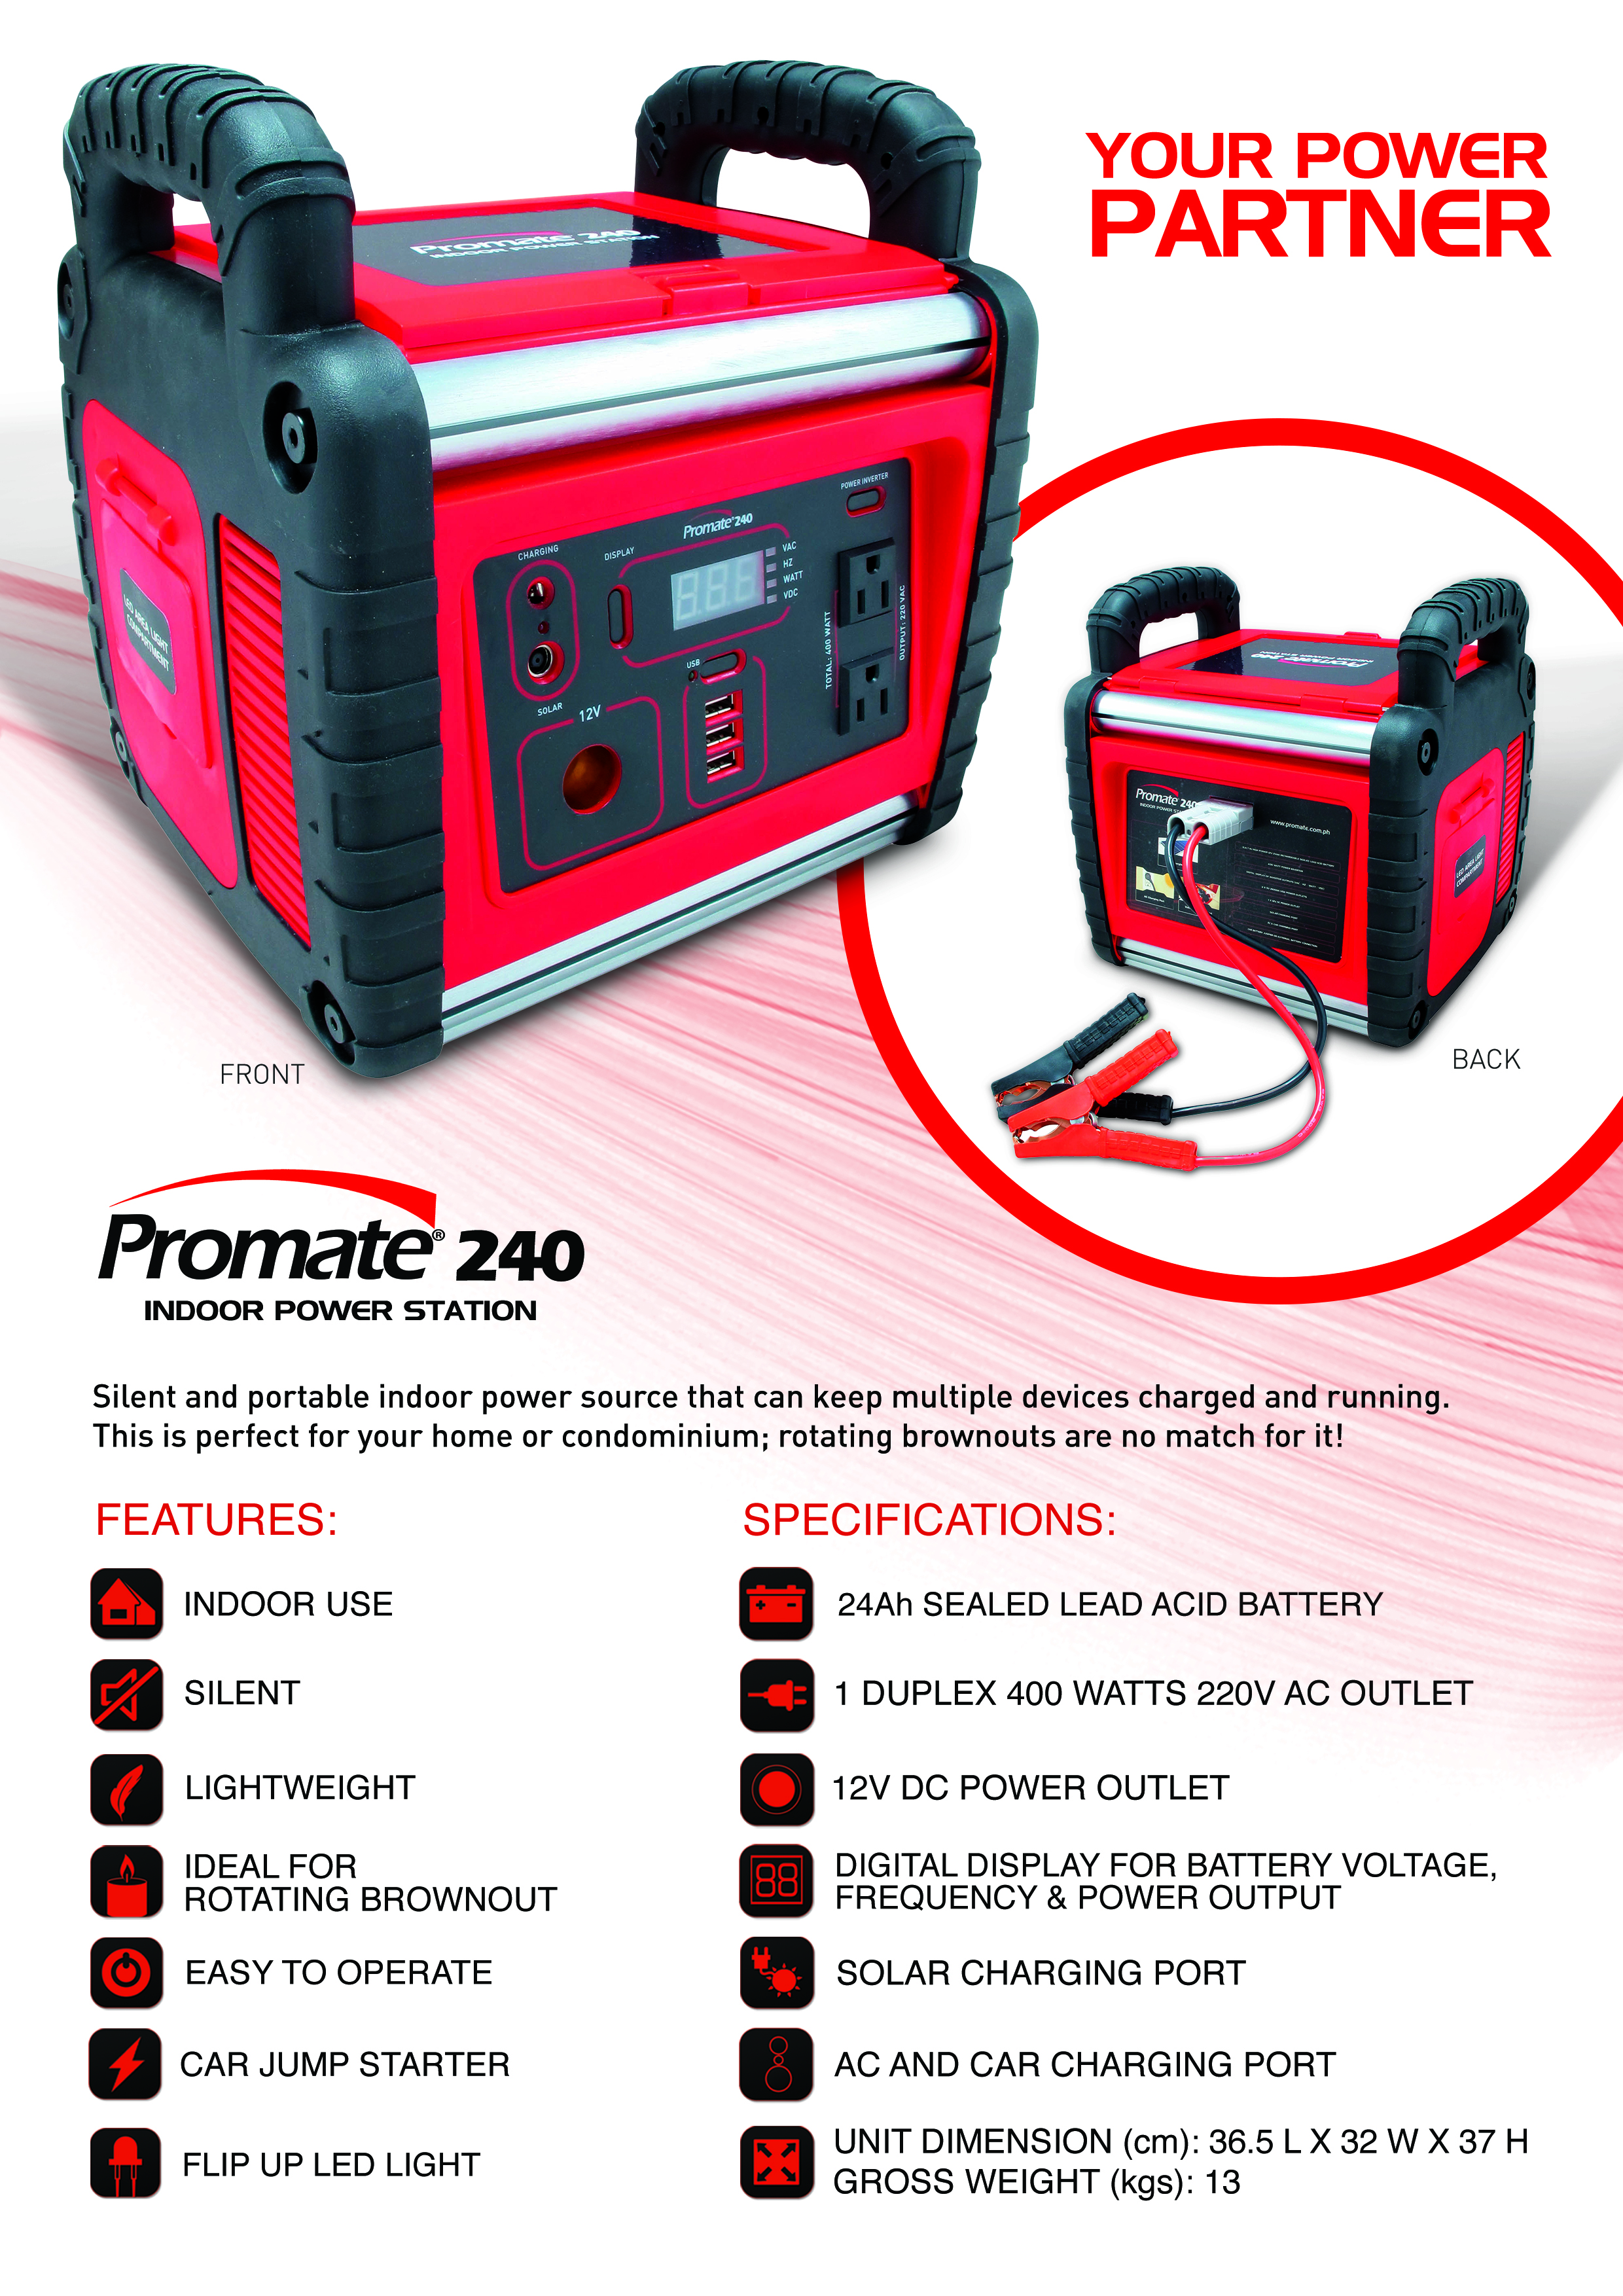 Promate 240 The Safe And Reliable Back Up Power Solution